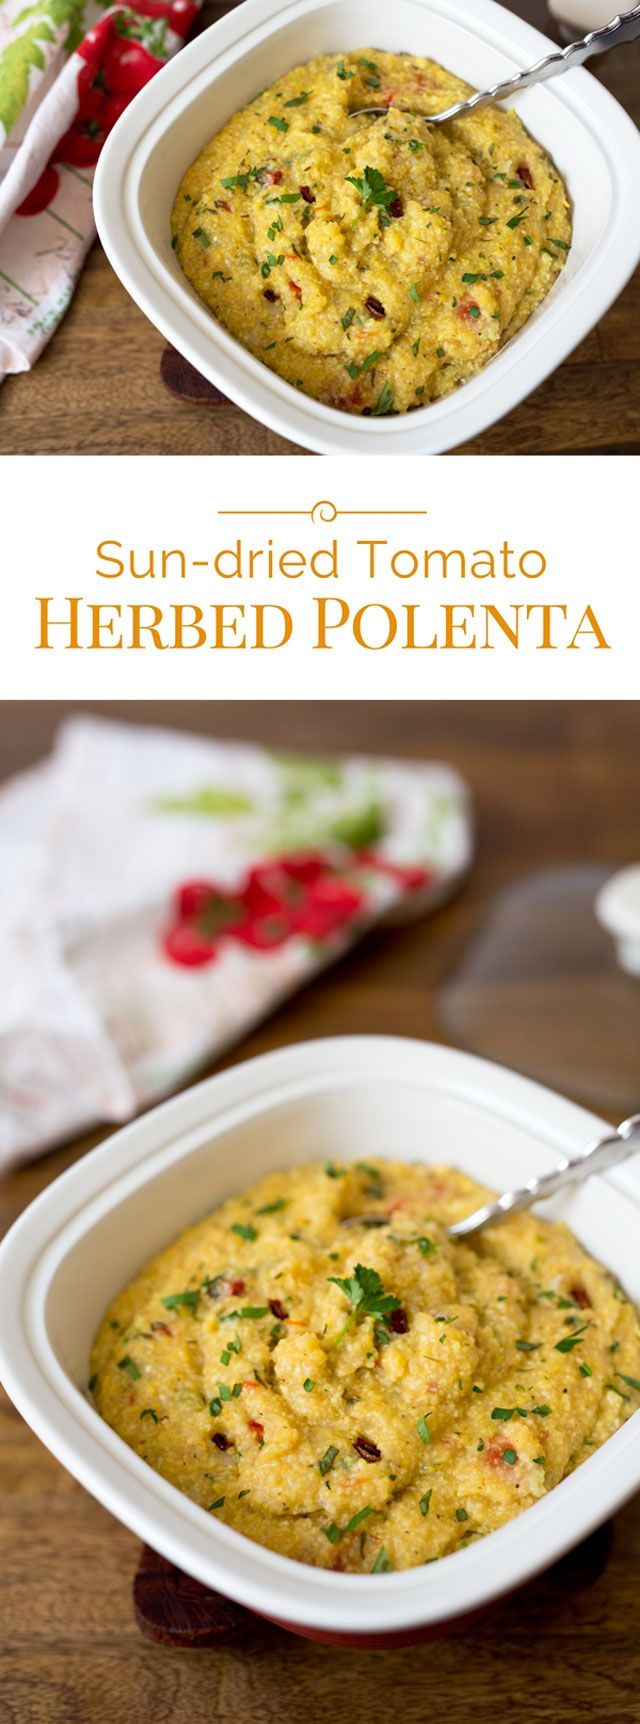 Polenta is an Italian corn porridge with a grits-like consistency, it's gluten-free. This version is flavored with fresh herbs and sweet sun-dried tomatoes.